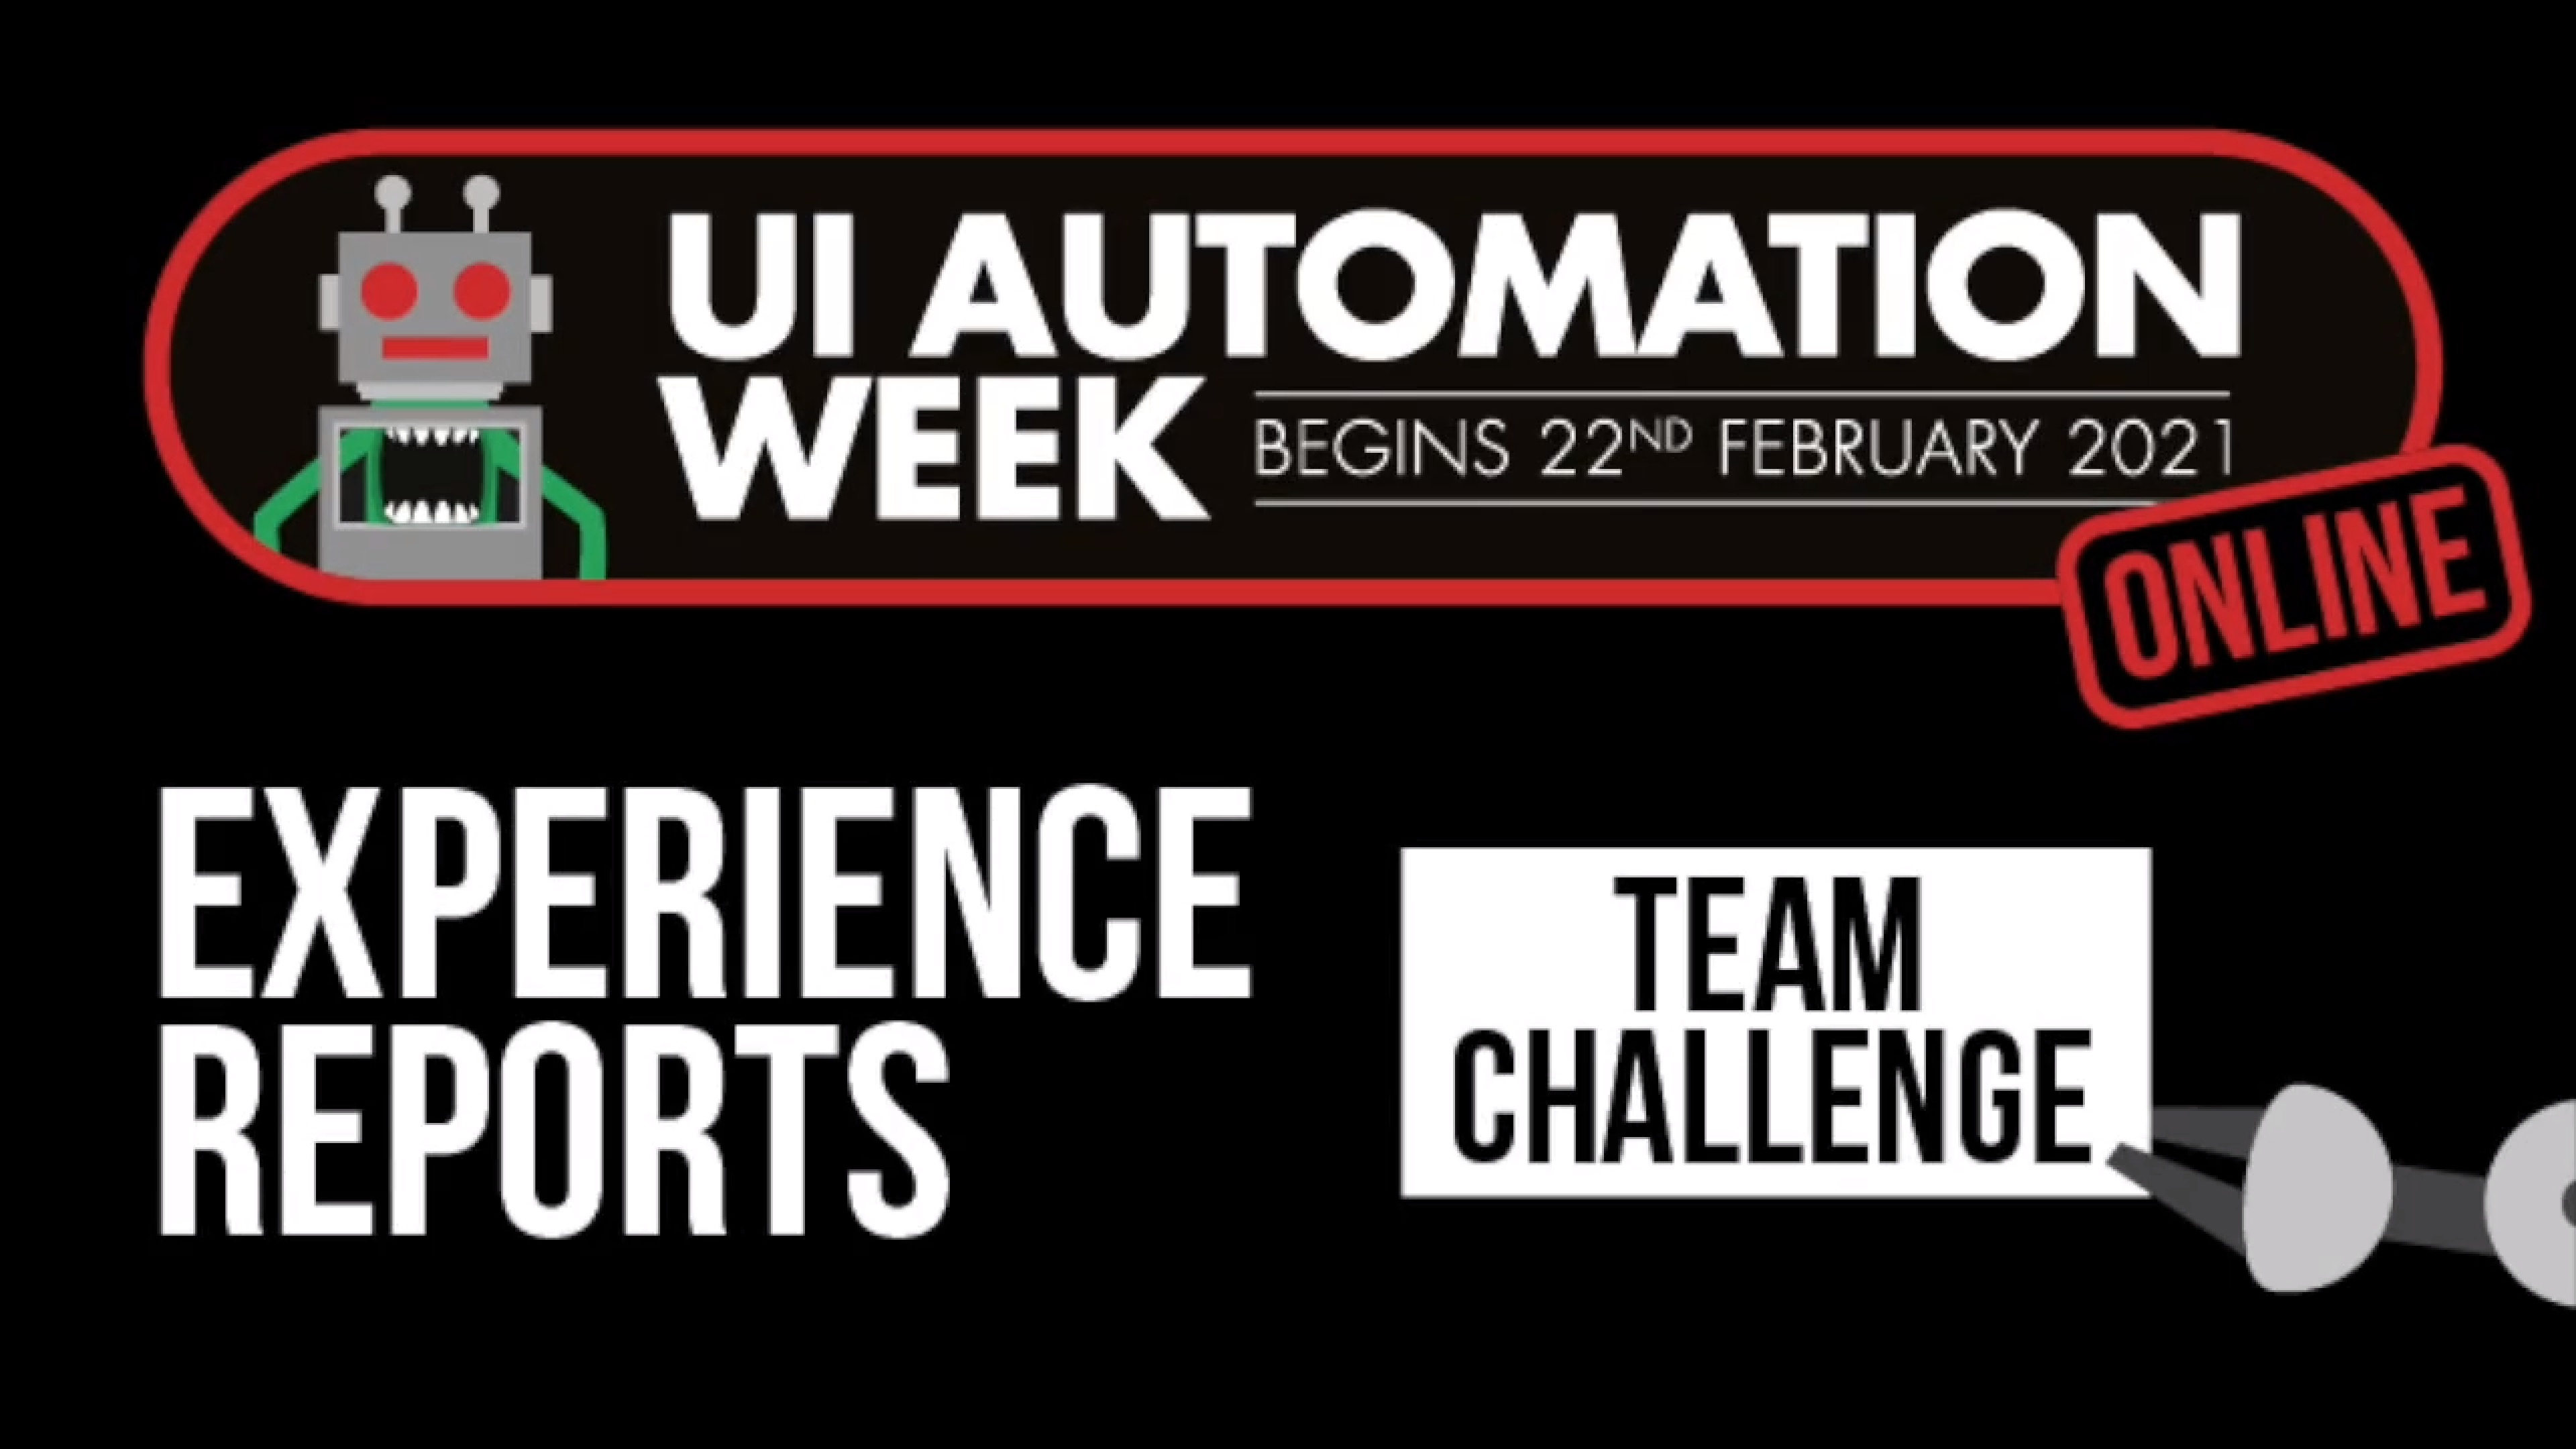 Experience Reports - Teams Challenge